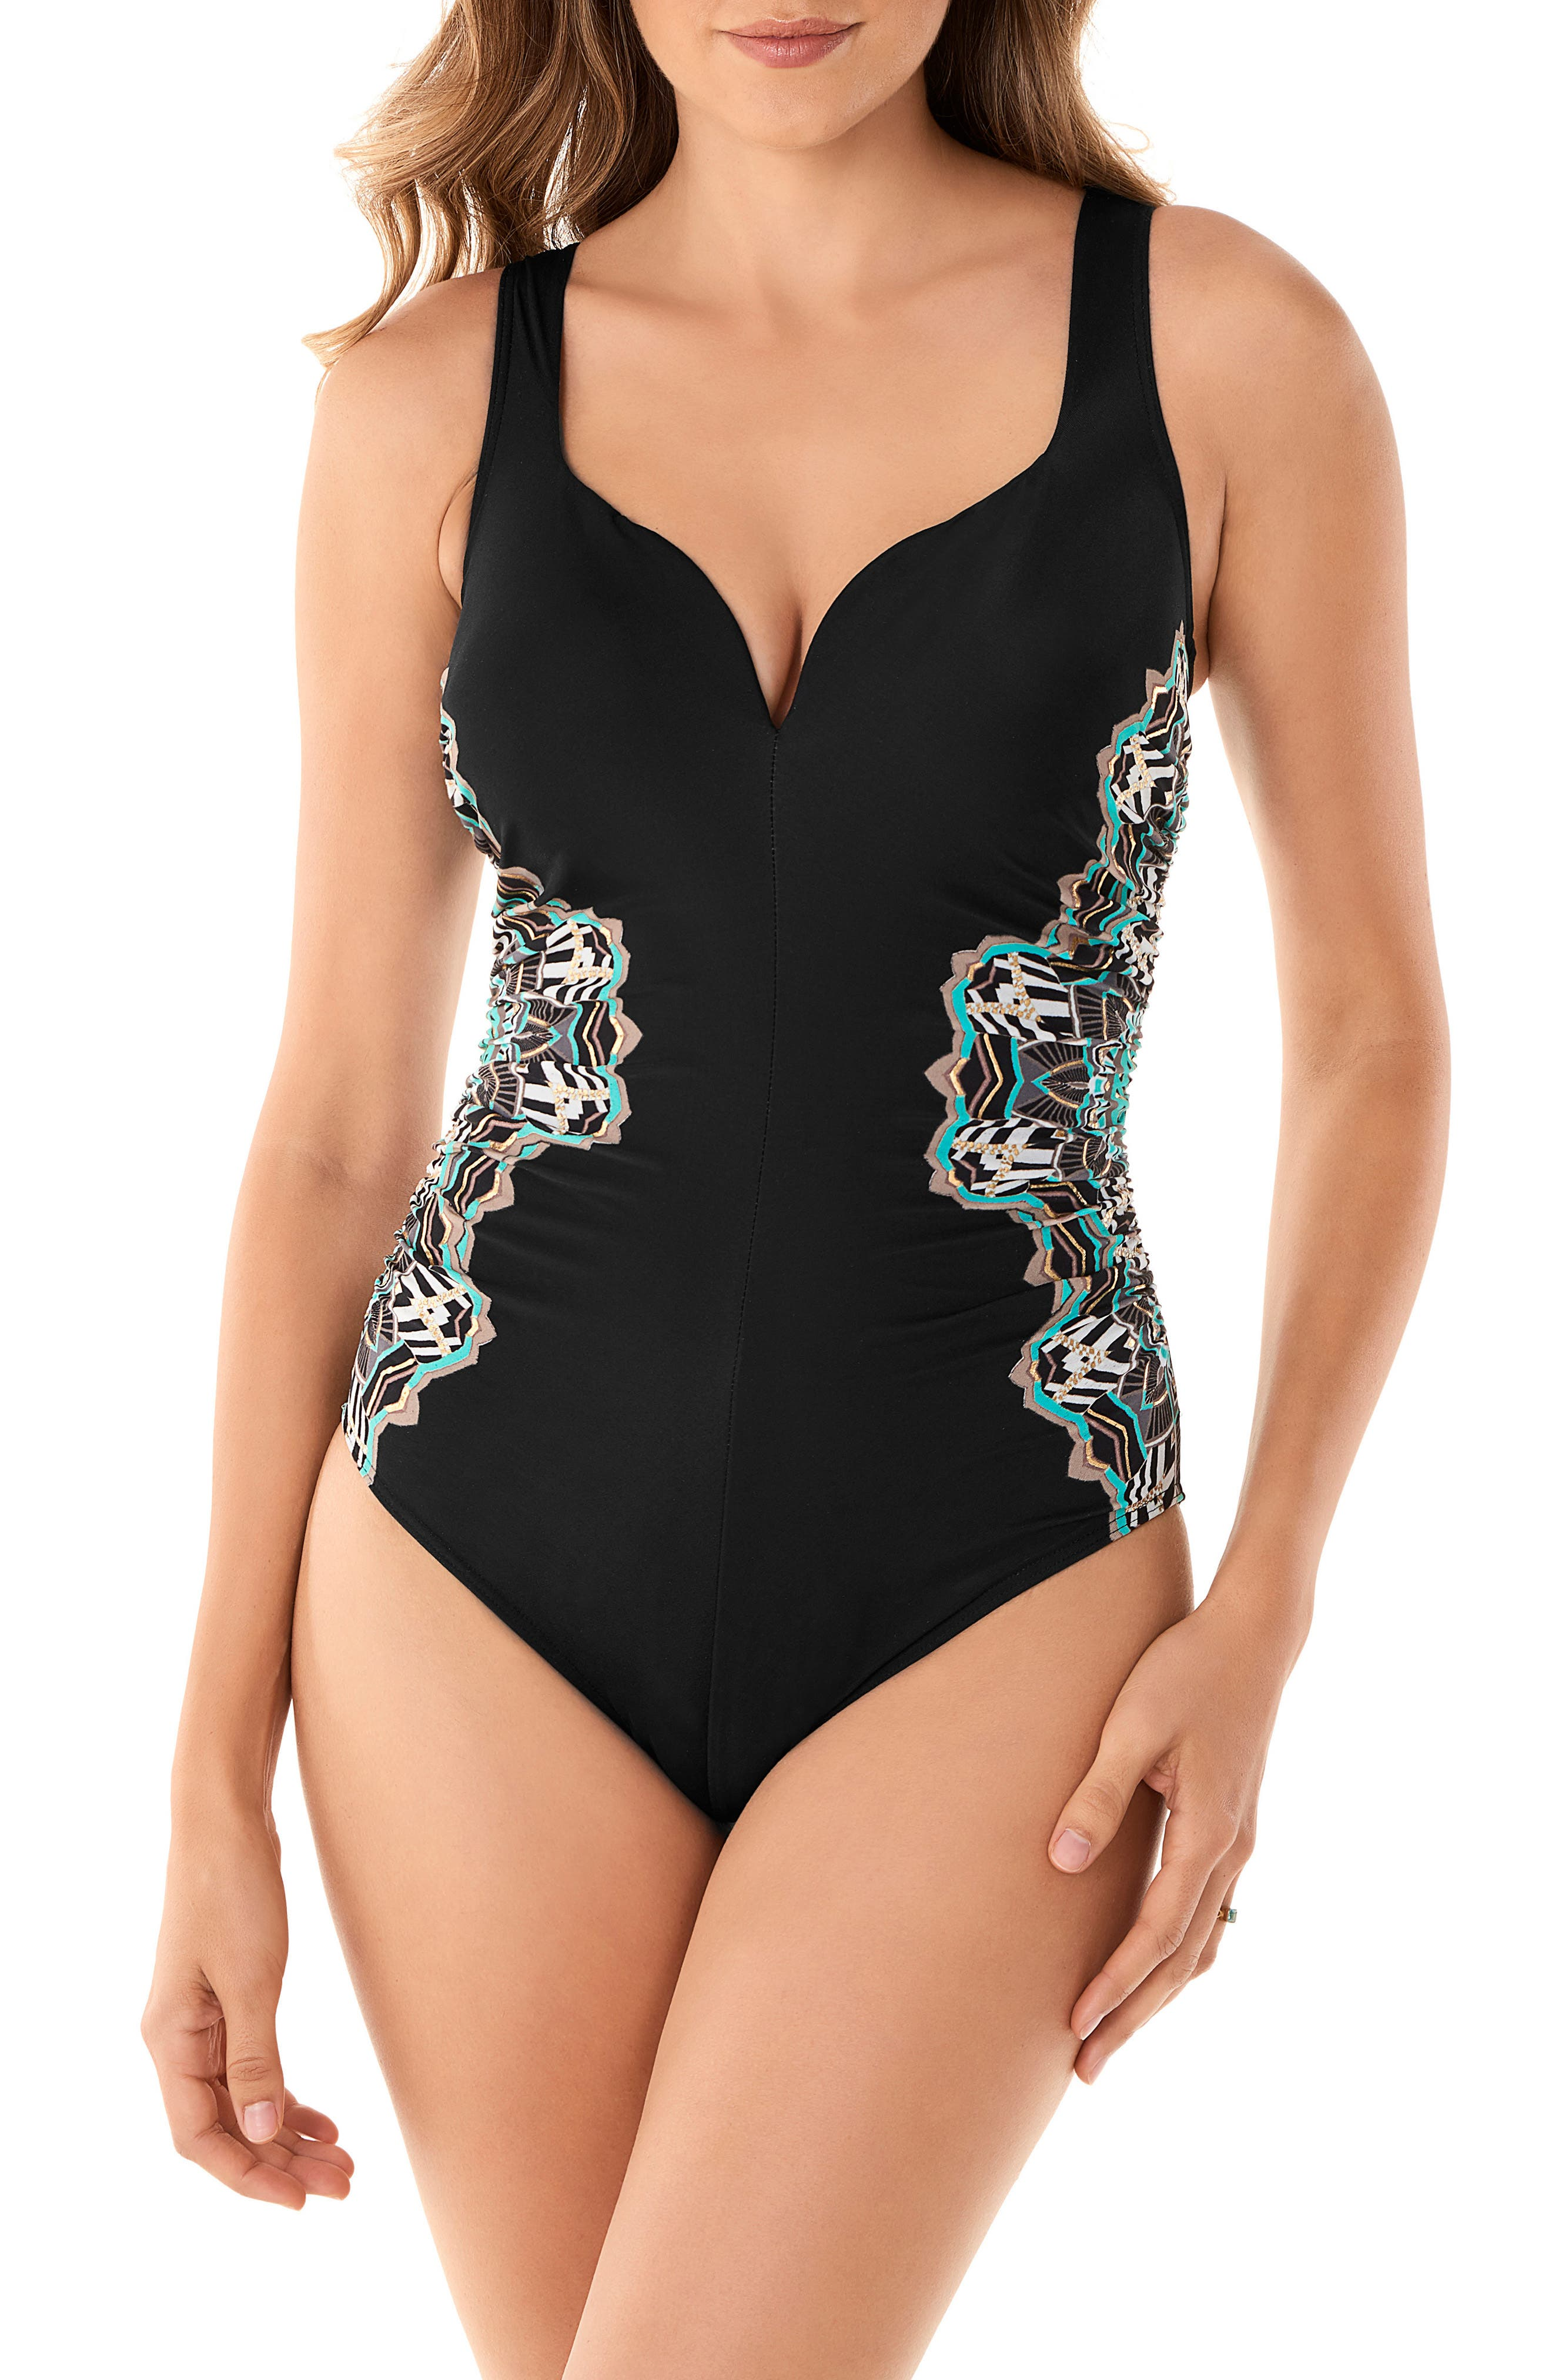 Image of Miraclesuit Samsara Temptress One-Piece Swimsuit